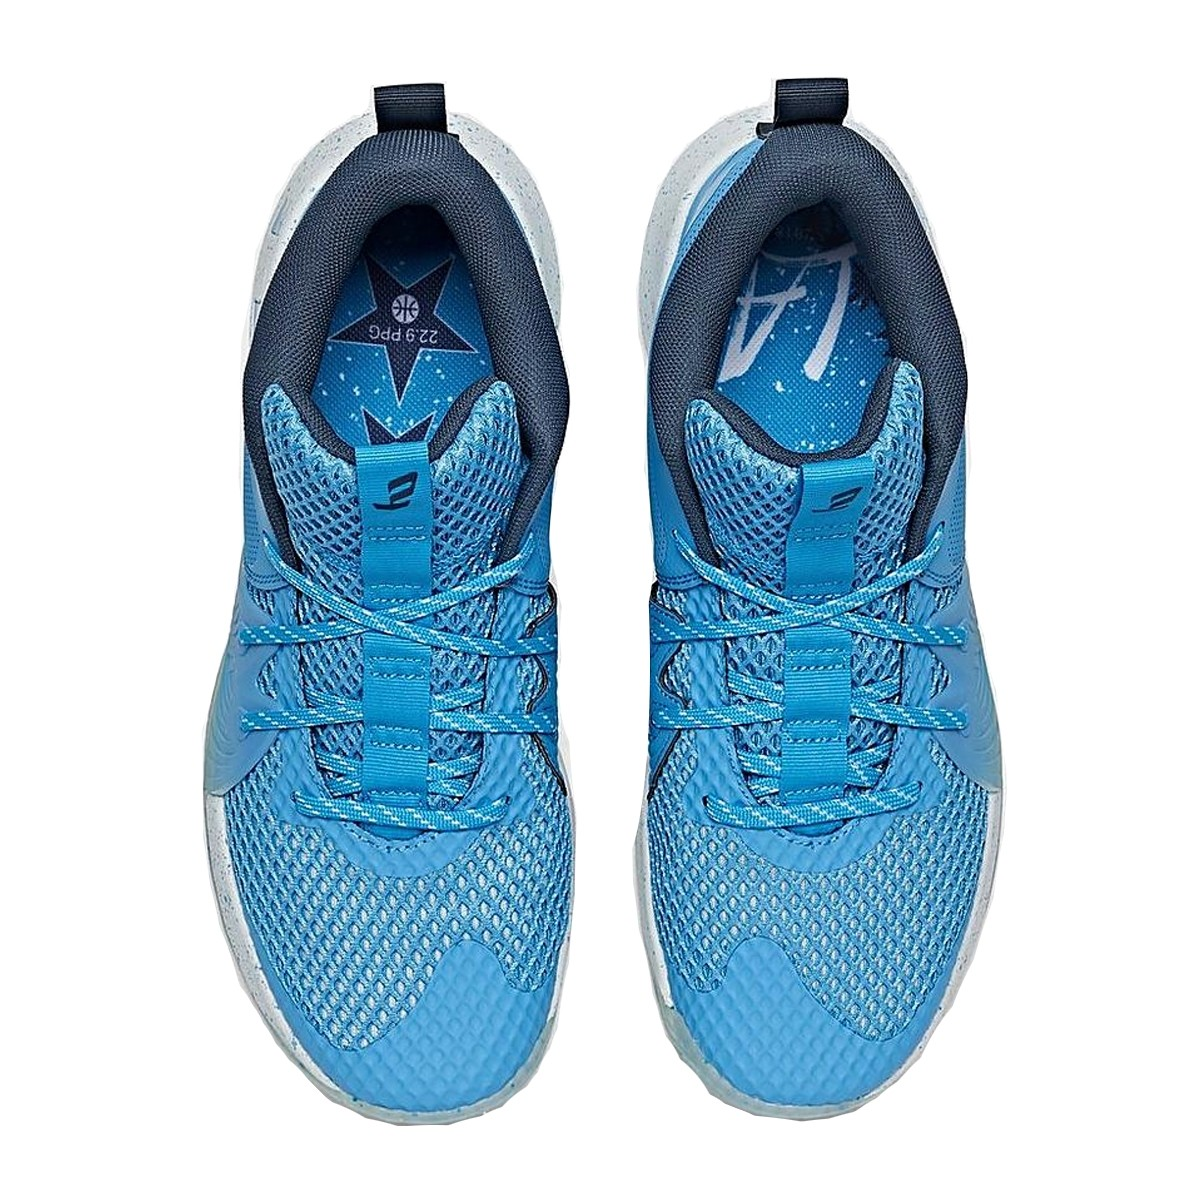 Under Armour Embiid One 'Light Blue'-3023086-402